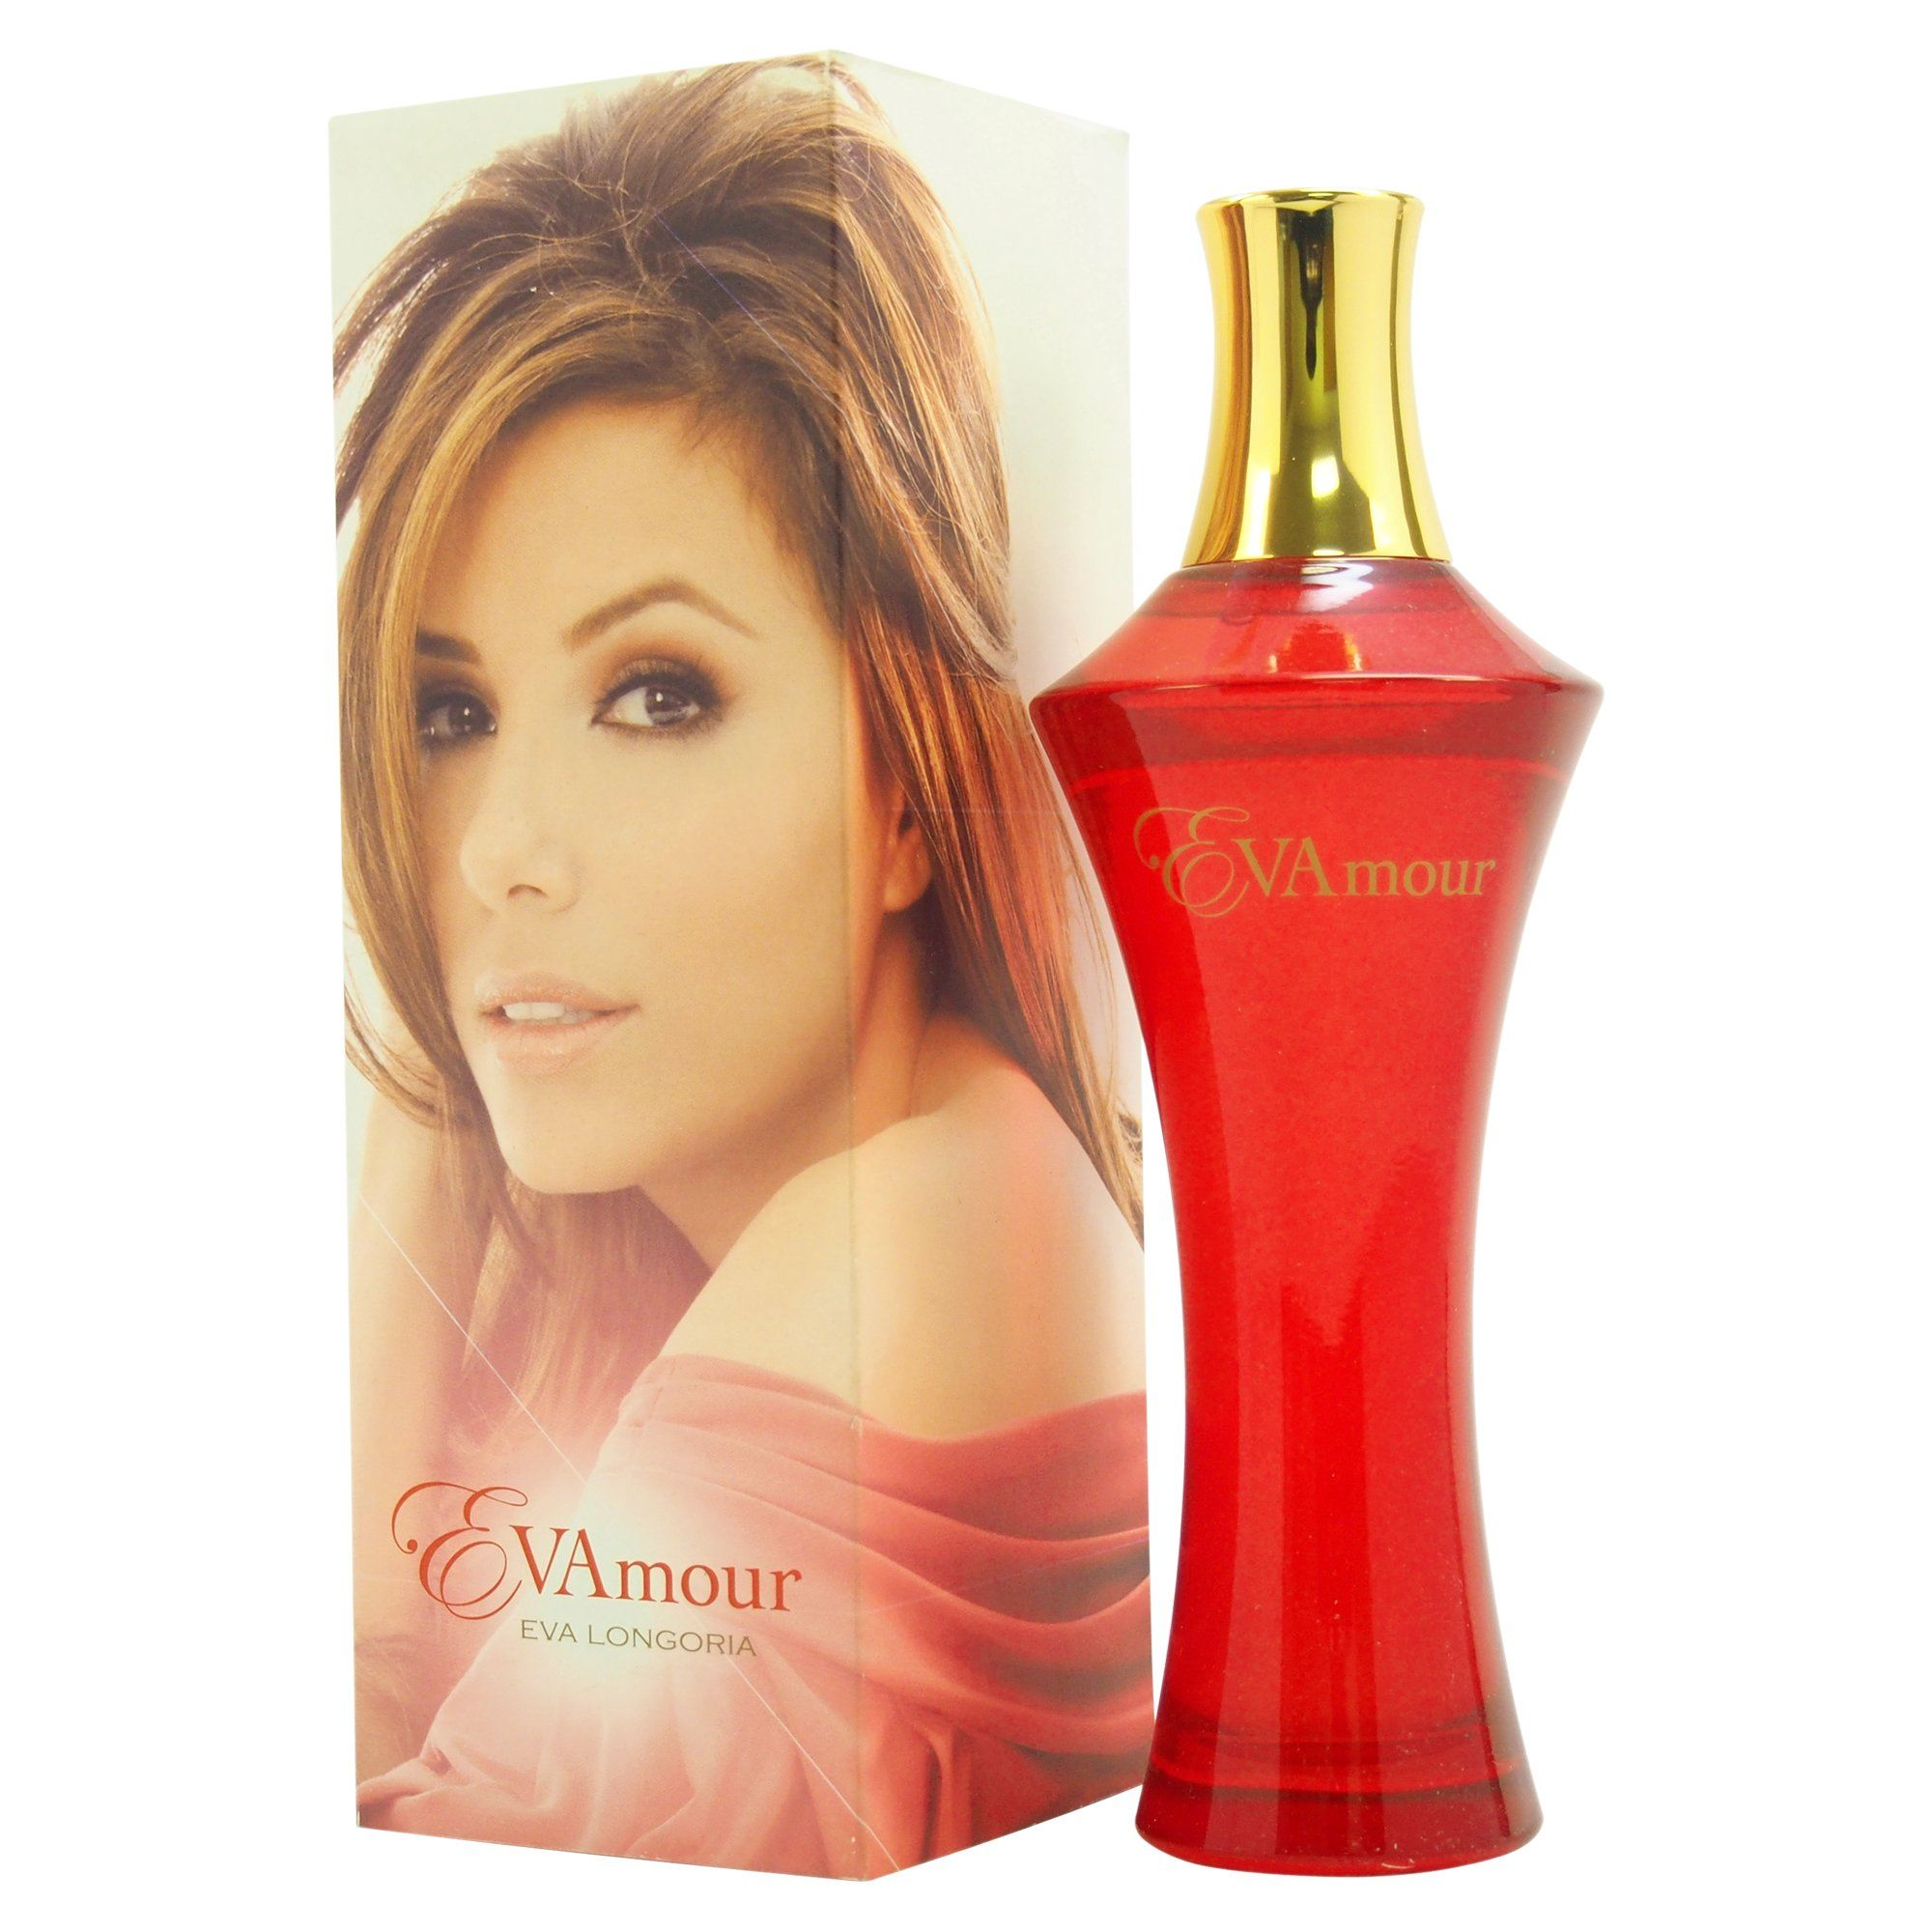 Eva Longoria Amour 100ml EDP